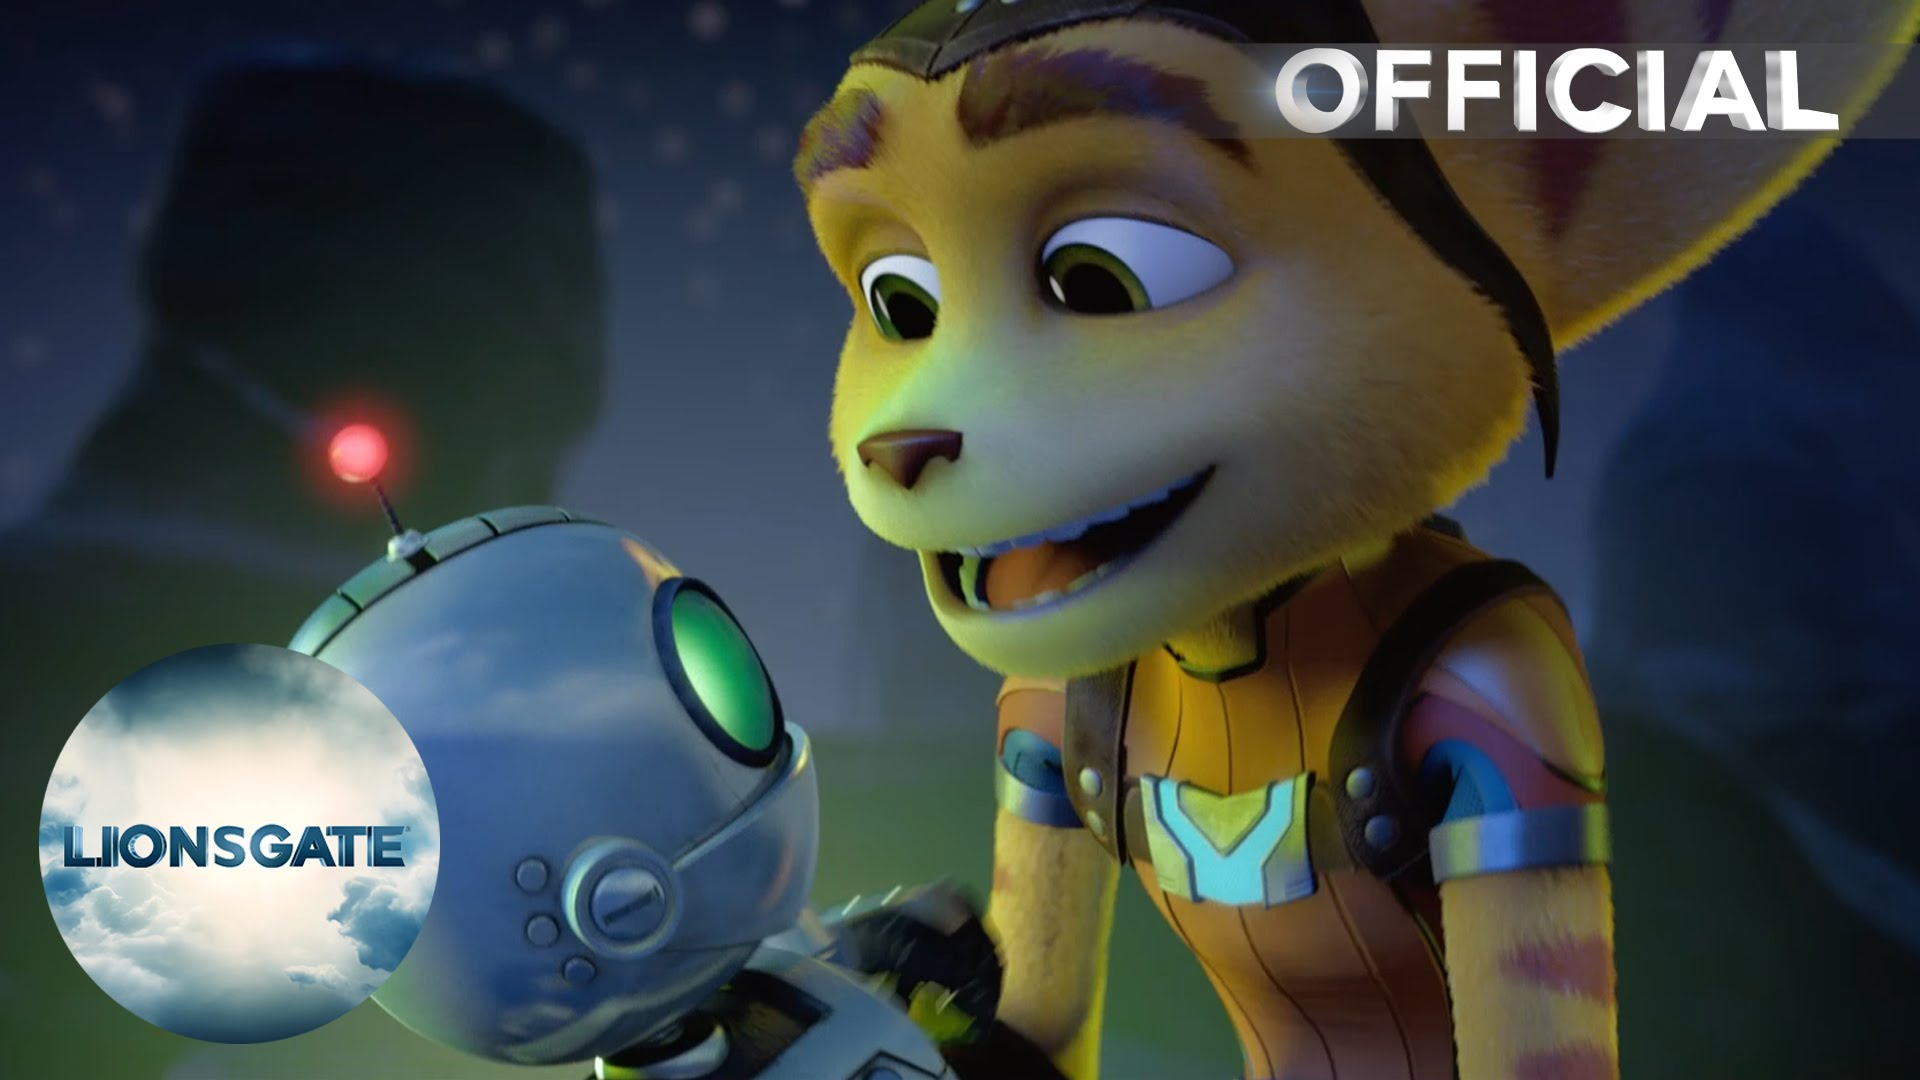 Ratchet and Clank – UK Trailer – On Digital Download August 22 & DVD August 29